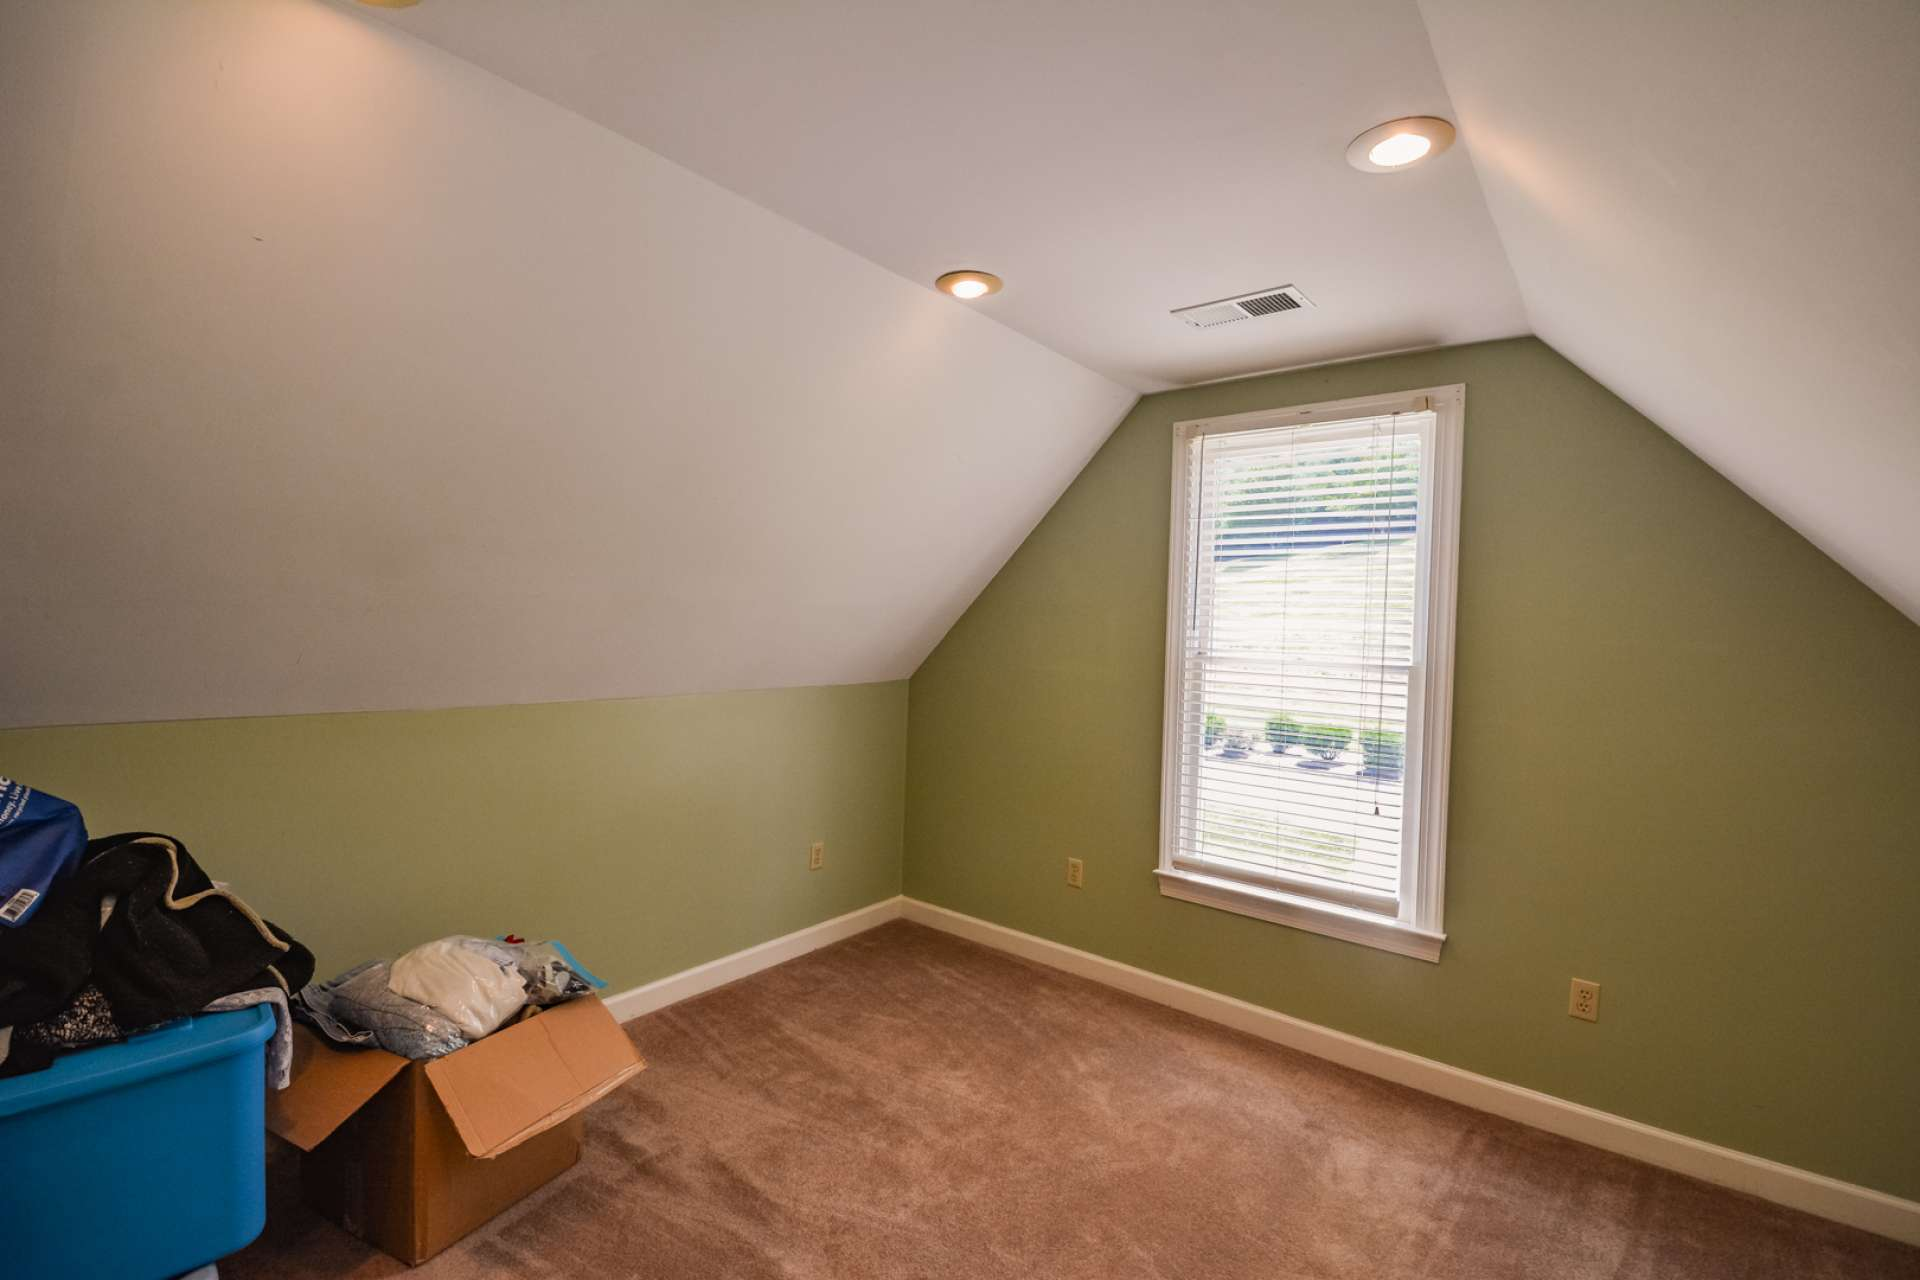 The upper level bedroom is currently utilized as storage space and could also be a home office or library.